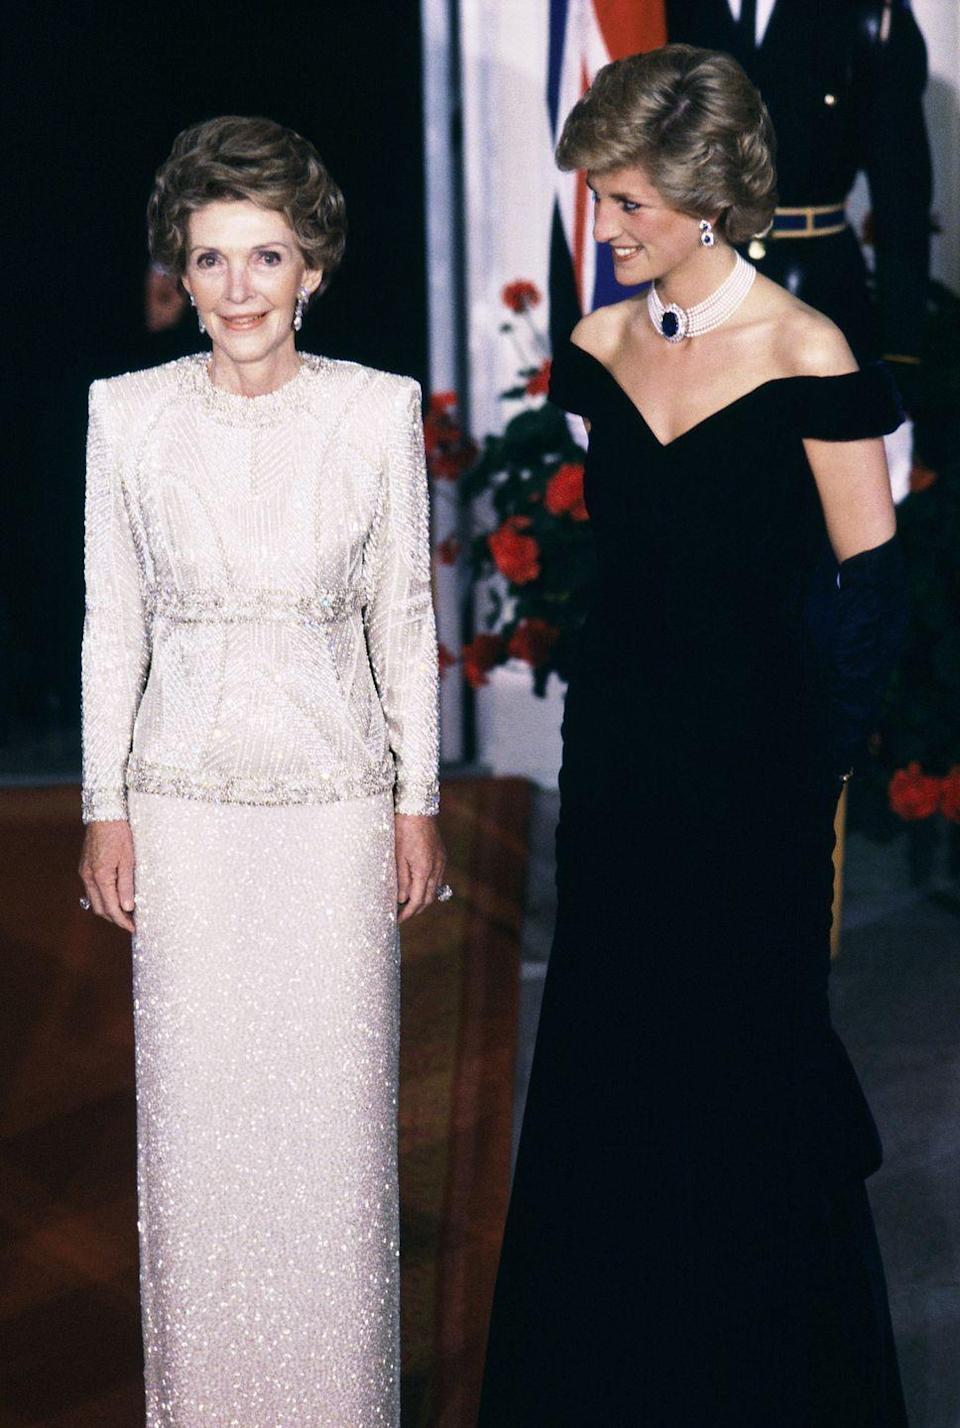 <p>A White House state dinner brought First Lady Nancy Reagan and Princess Diana together. The First Lady wore a long sleeve beaded evening gown, while the Princess had on a midnight blue velvet off-the-shoulder Victor Edelstein dress.</p>